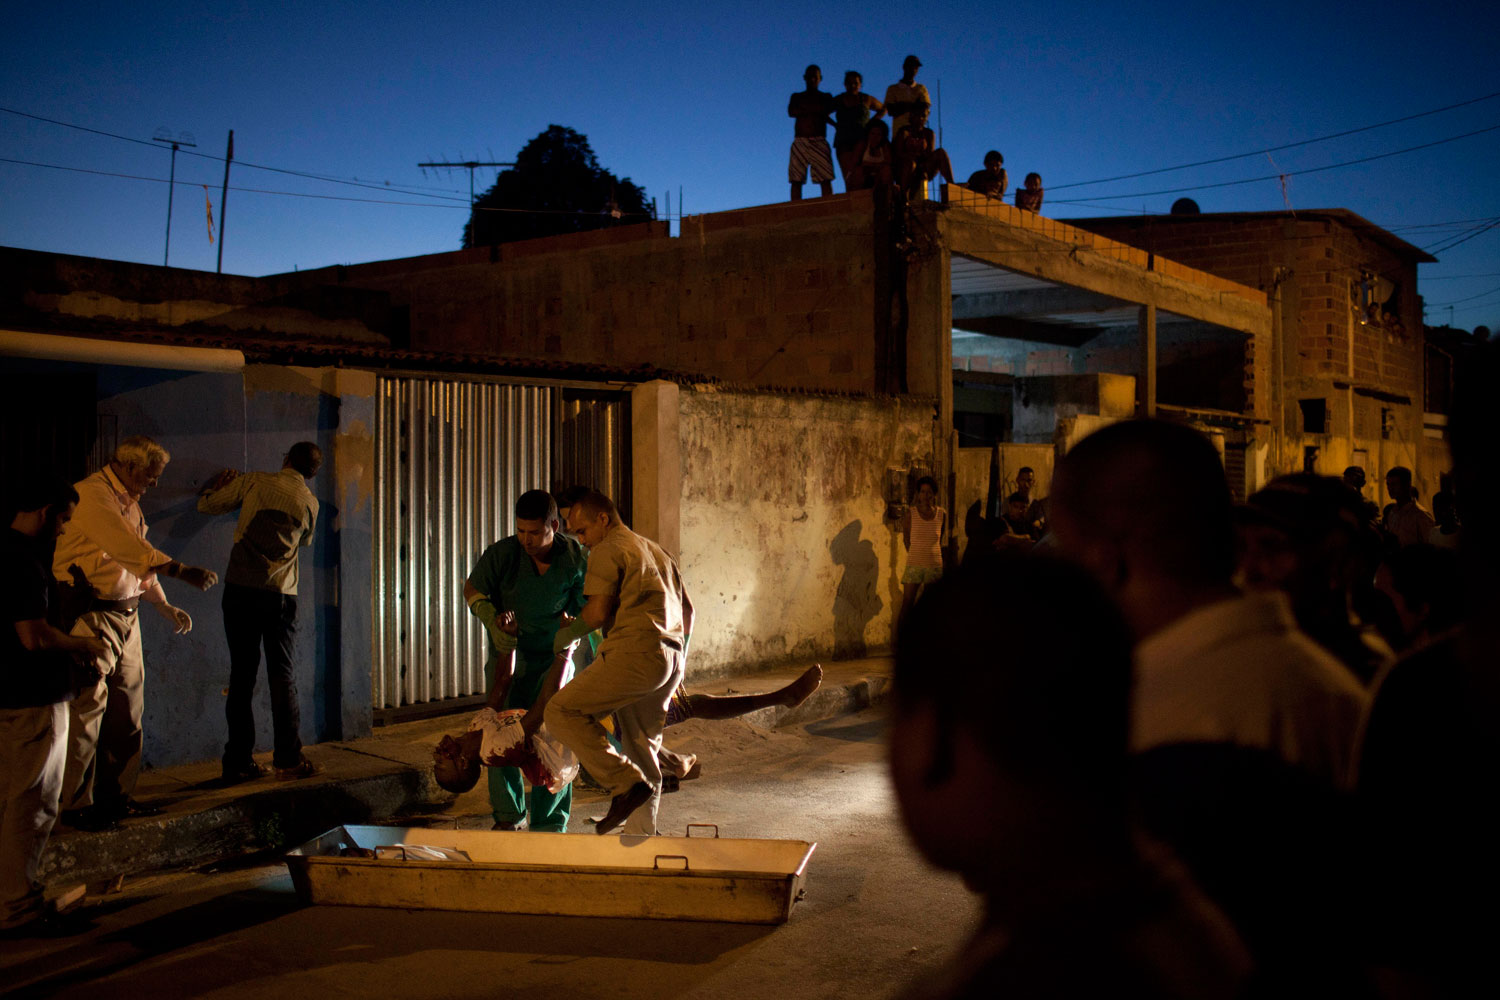 February  8, 2012. Morgue workers remove the body of a man killed during a shooting from the crime scene at Itinga neighborhood in Salvador, Brazil. About one-third of Bahia state's 30,000 patrolling police went on strike last week. During the strike the murder rate in Salvador, the nation's third-largest city, doubled.